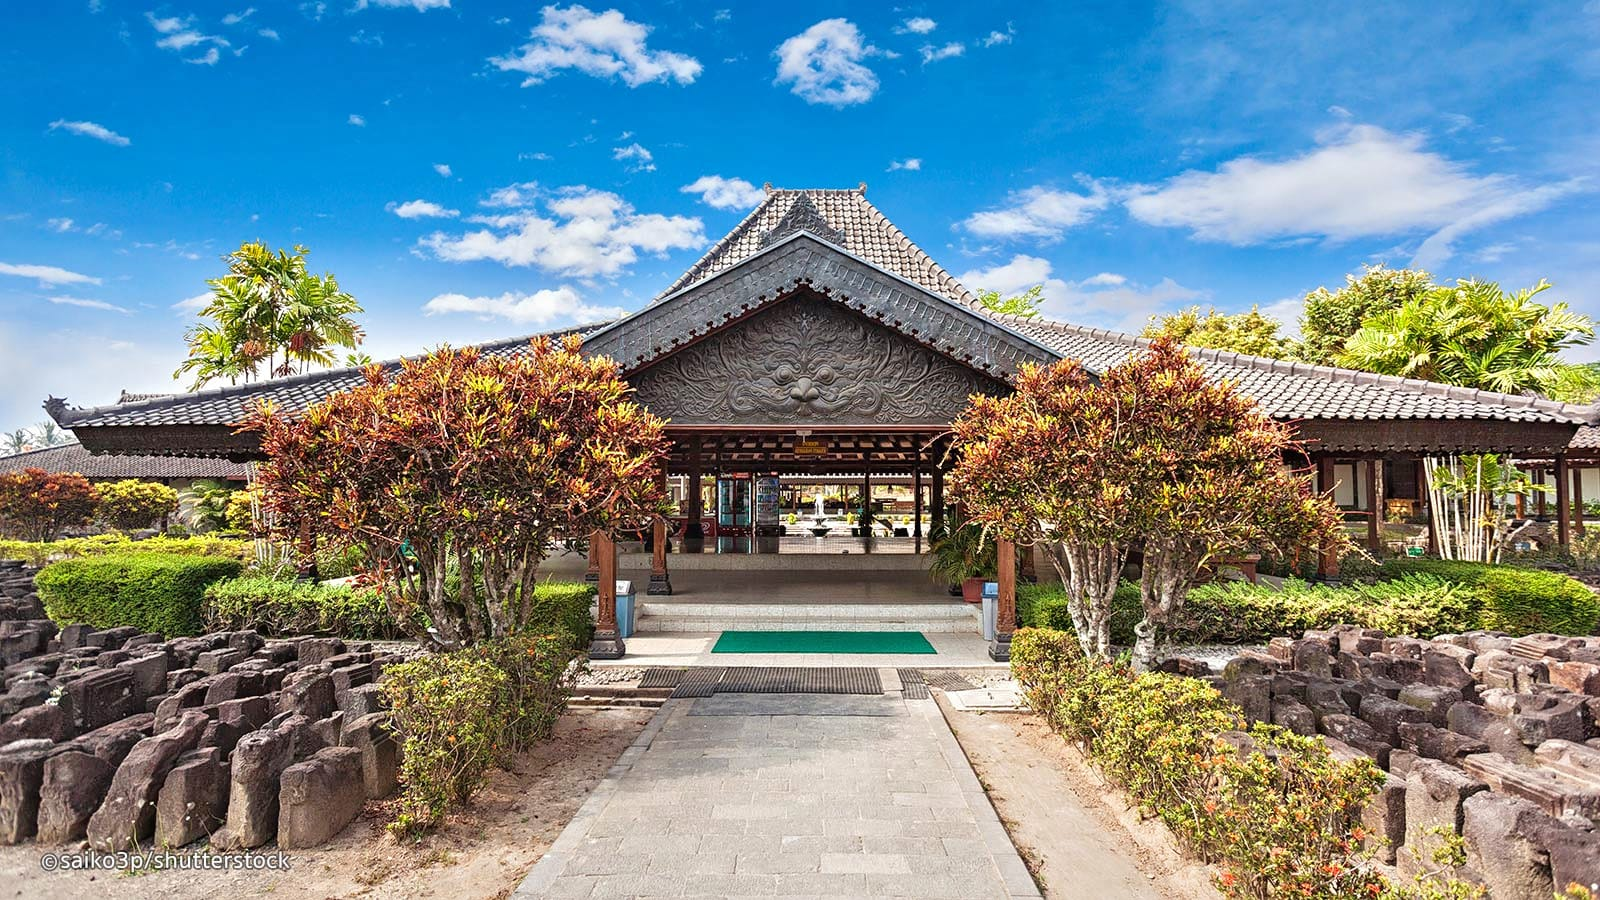 Visit the Bali Provincial State Museum